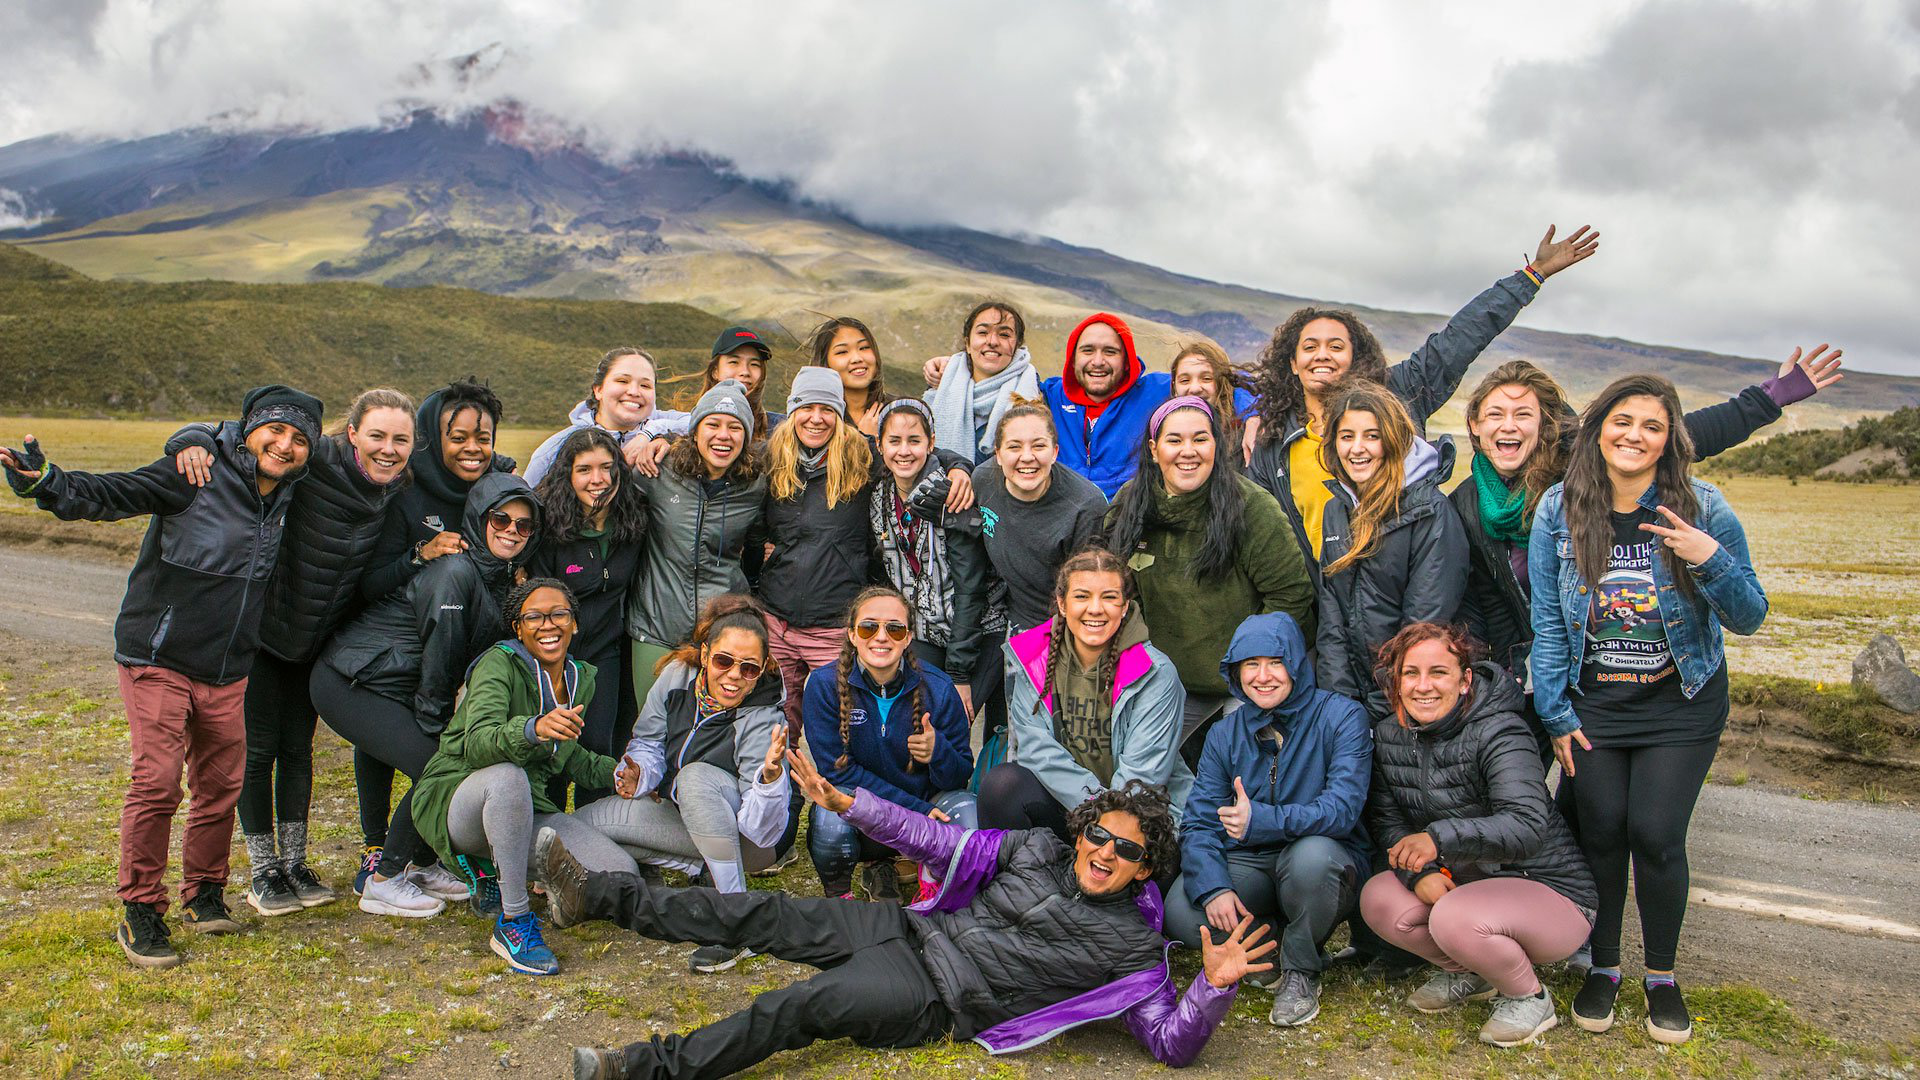 FAM Tour group in front of the famous, live Cotopaxi volcano